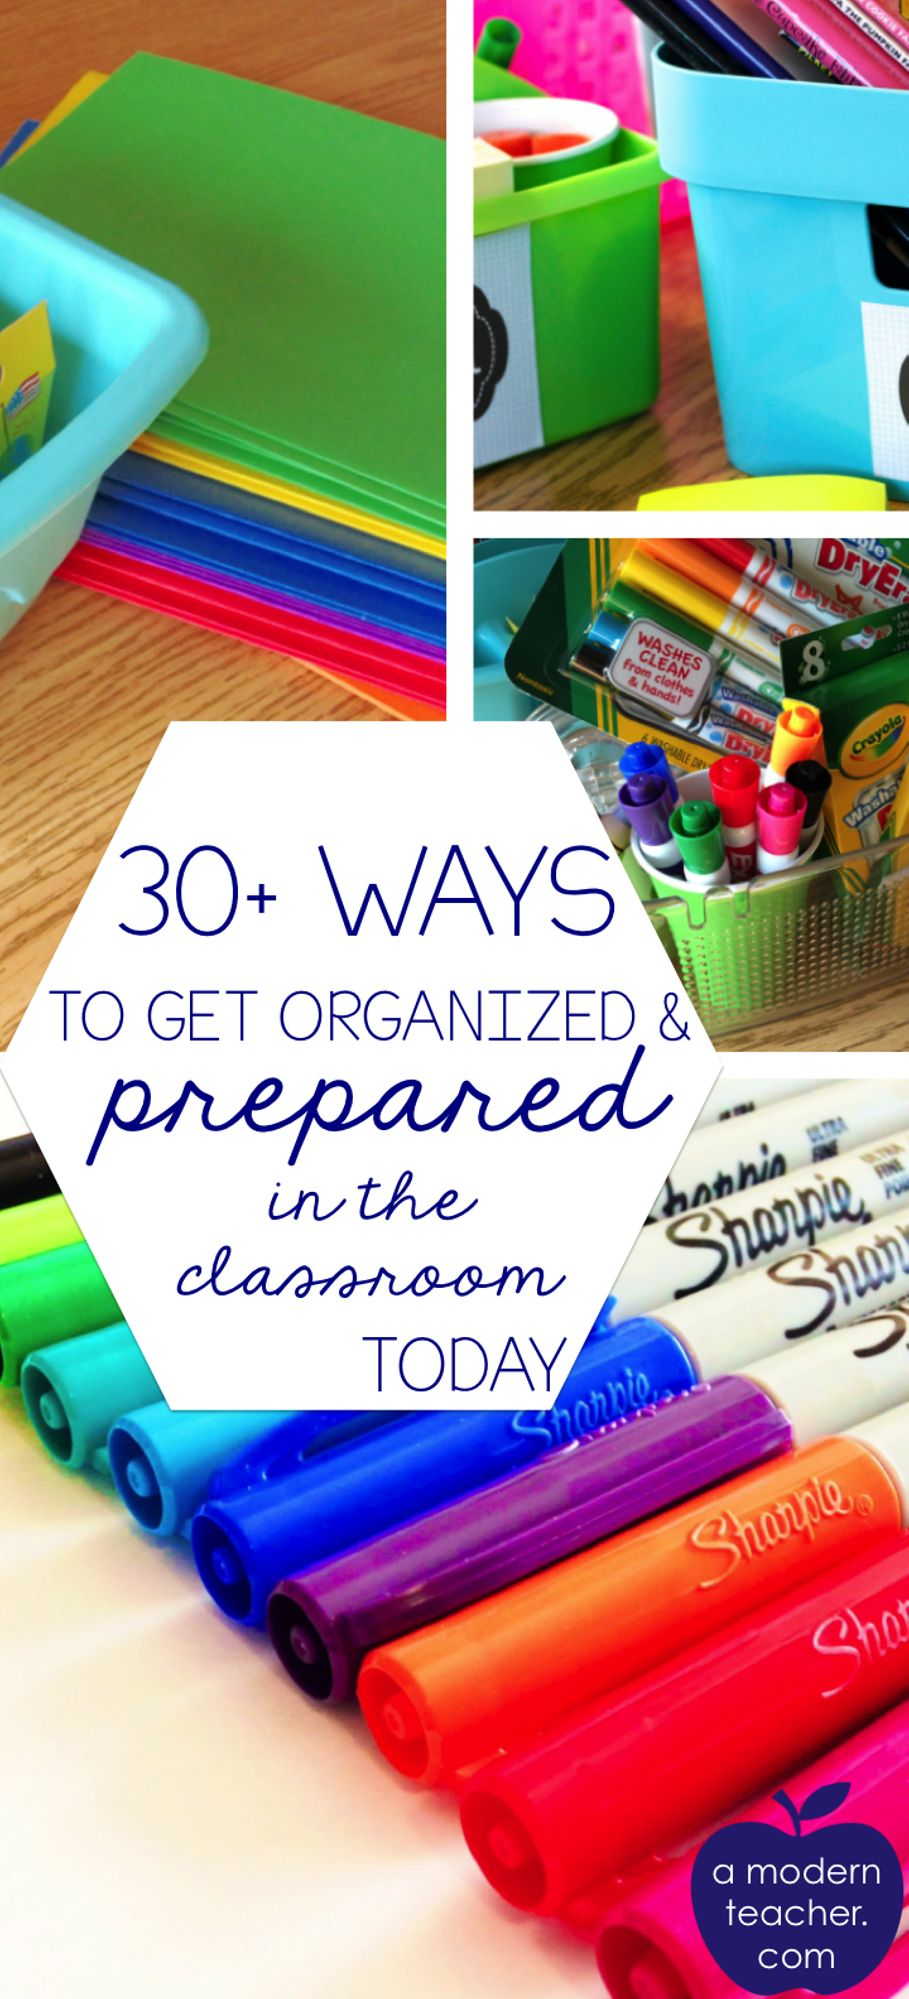 30+ Ways to Feel Prepared in the Classroom (Plus Free Printable)